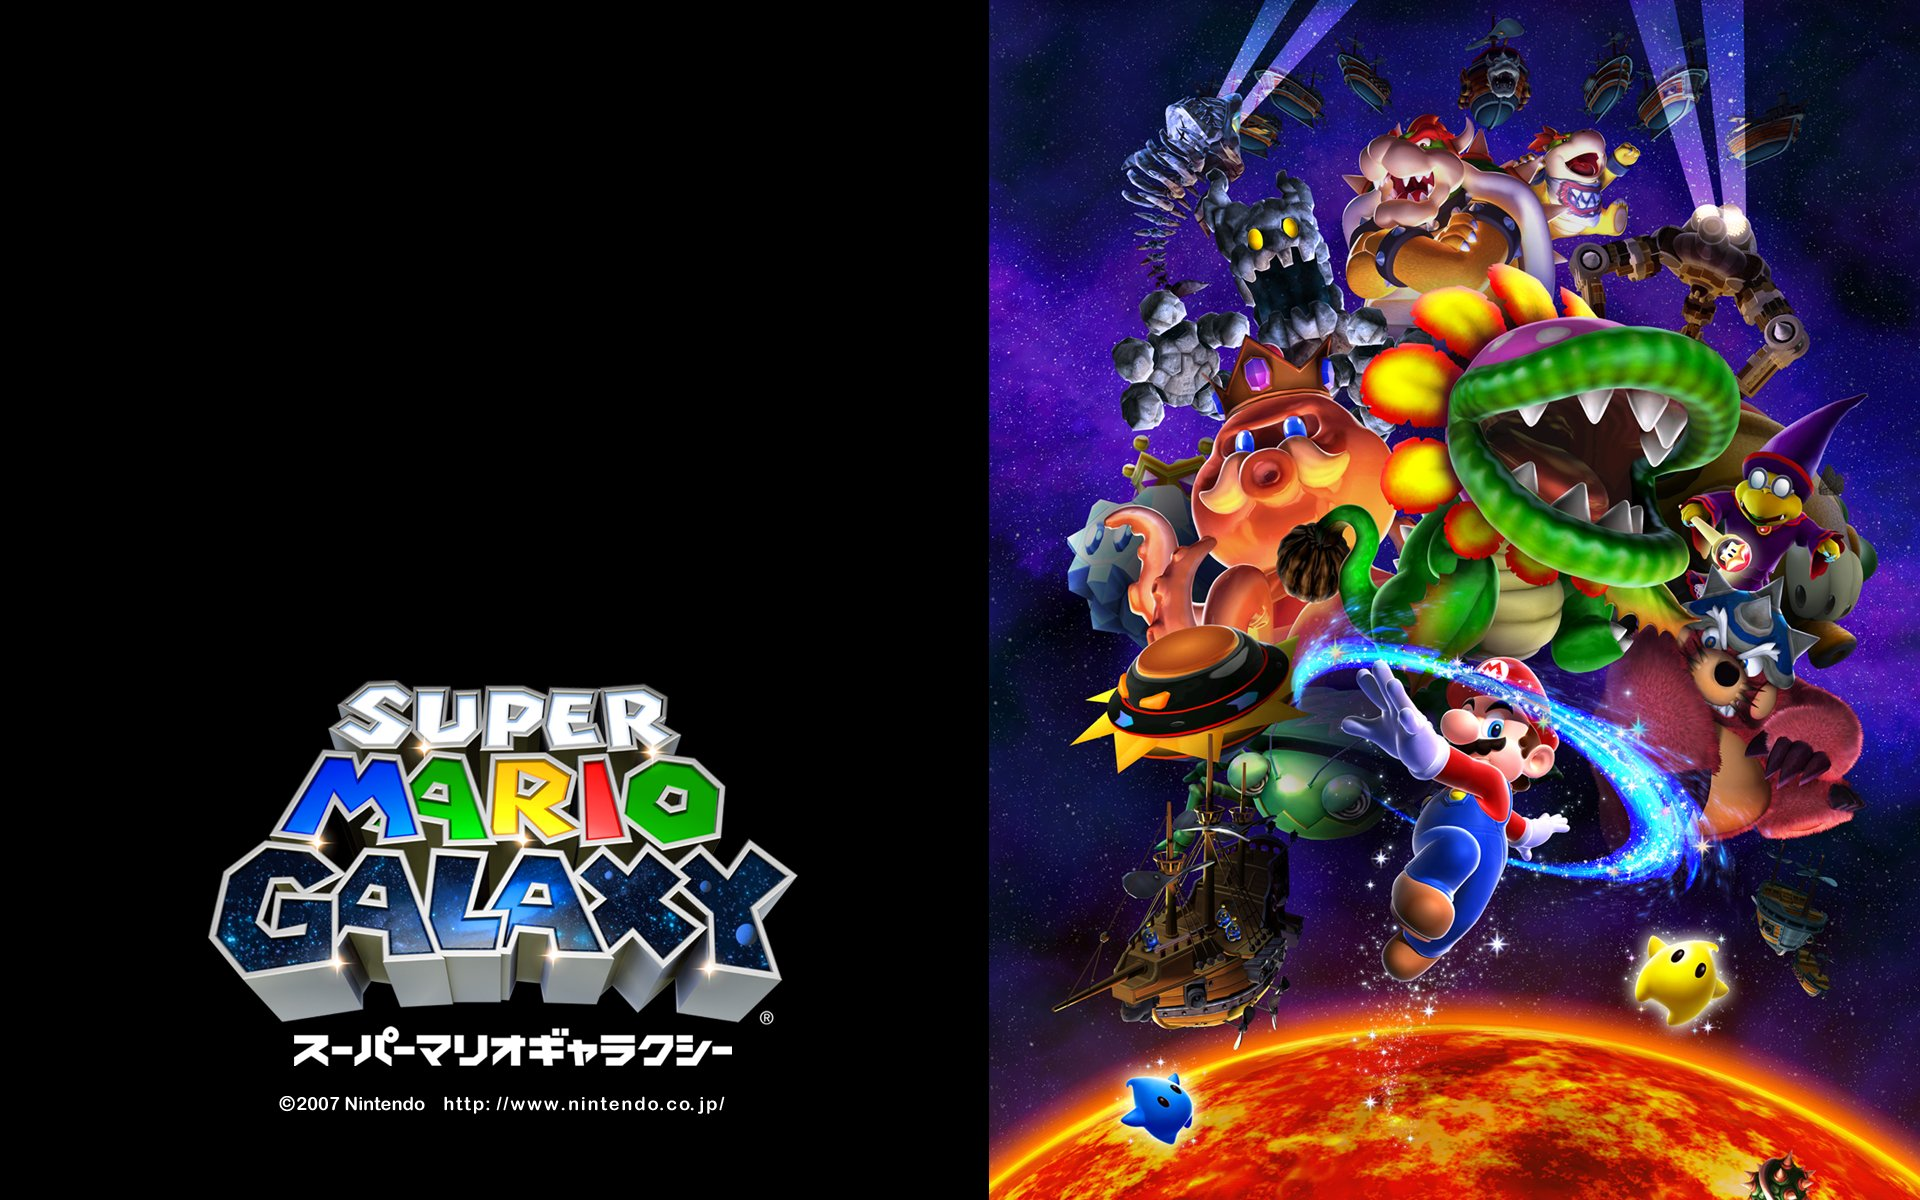 Super Mario Galaxy Hd Wallpaper Background Image